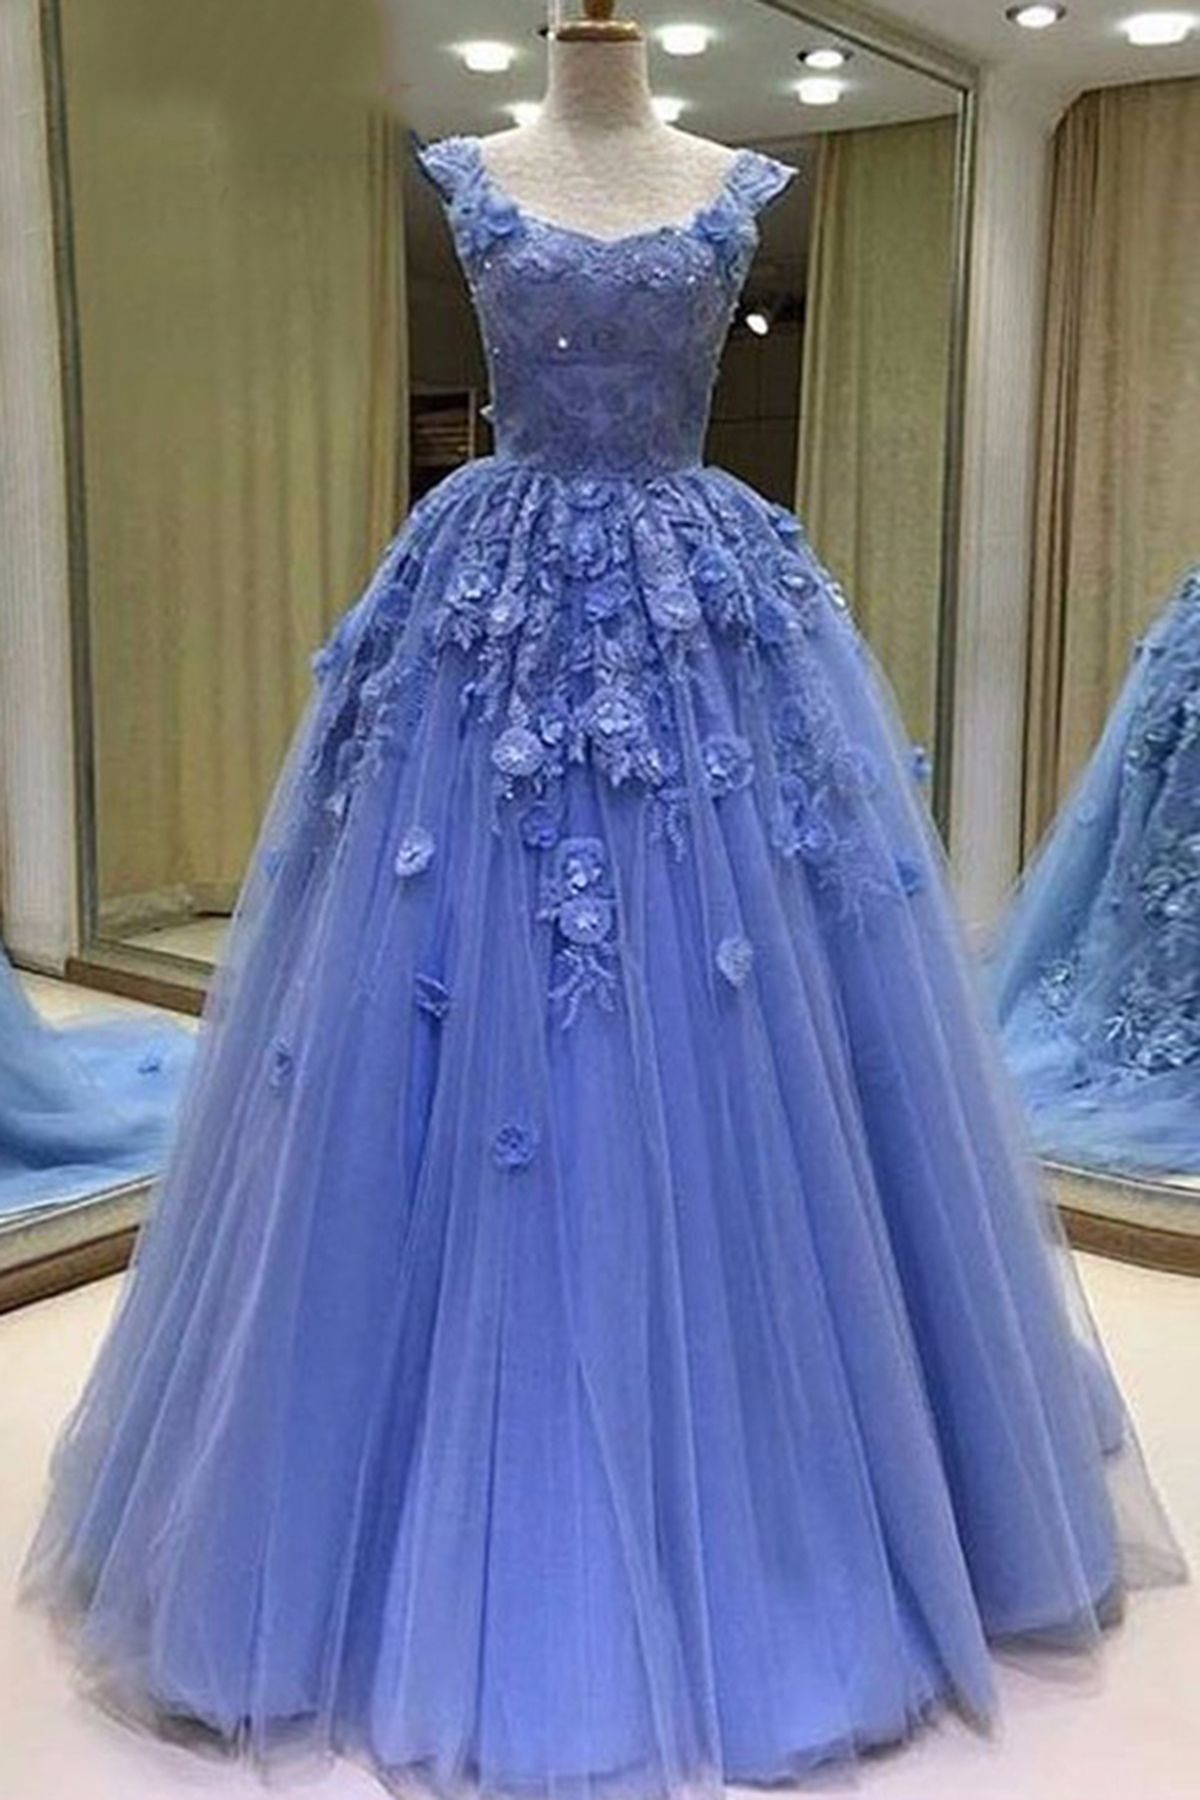 Blue tulle sweetheart d lace appliqués new brand formal prom dress